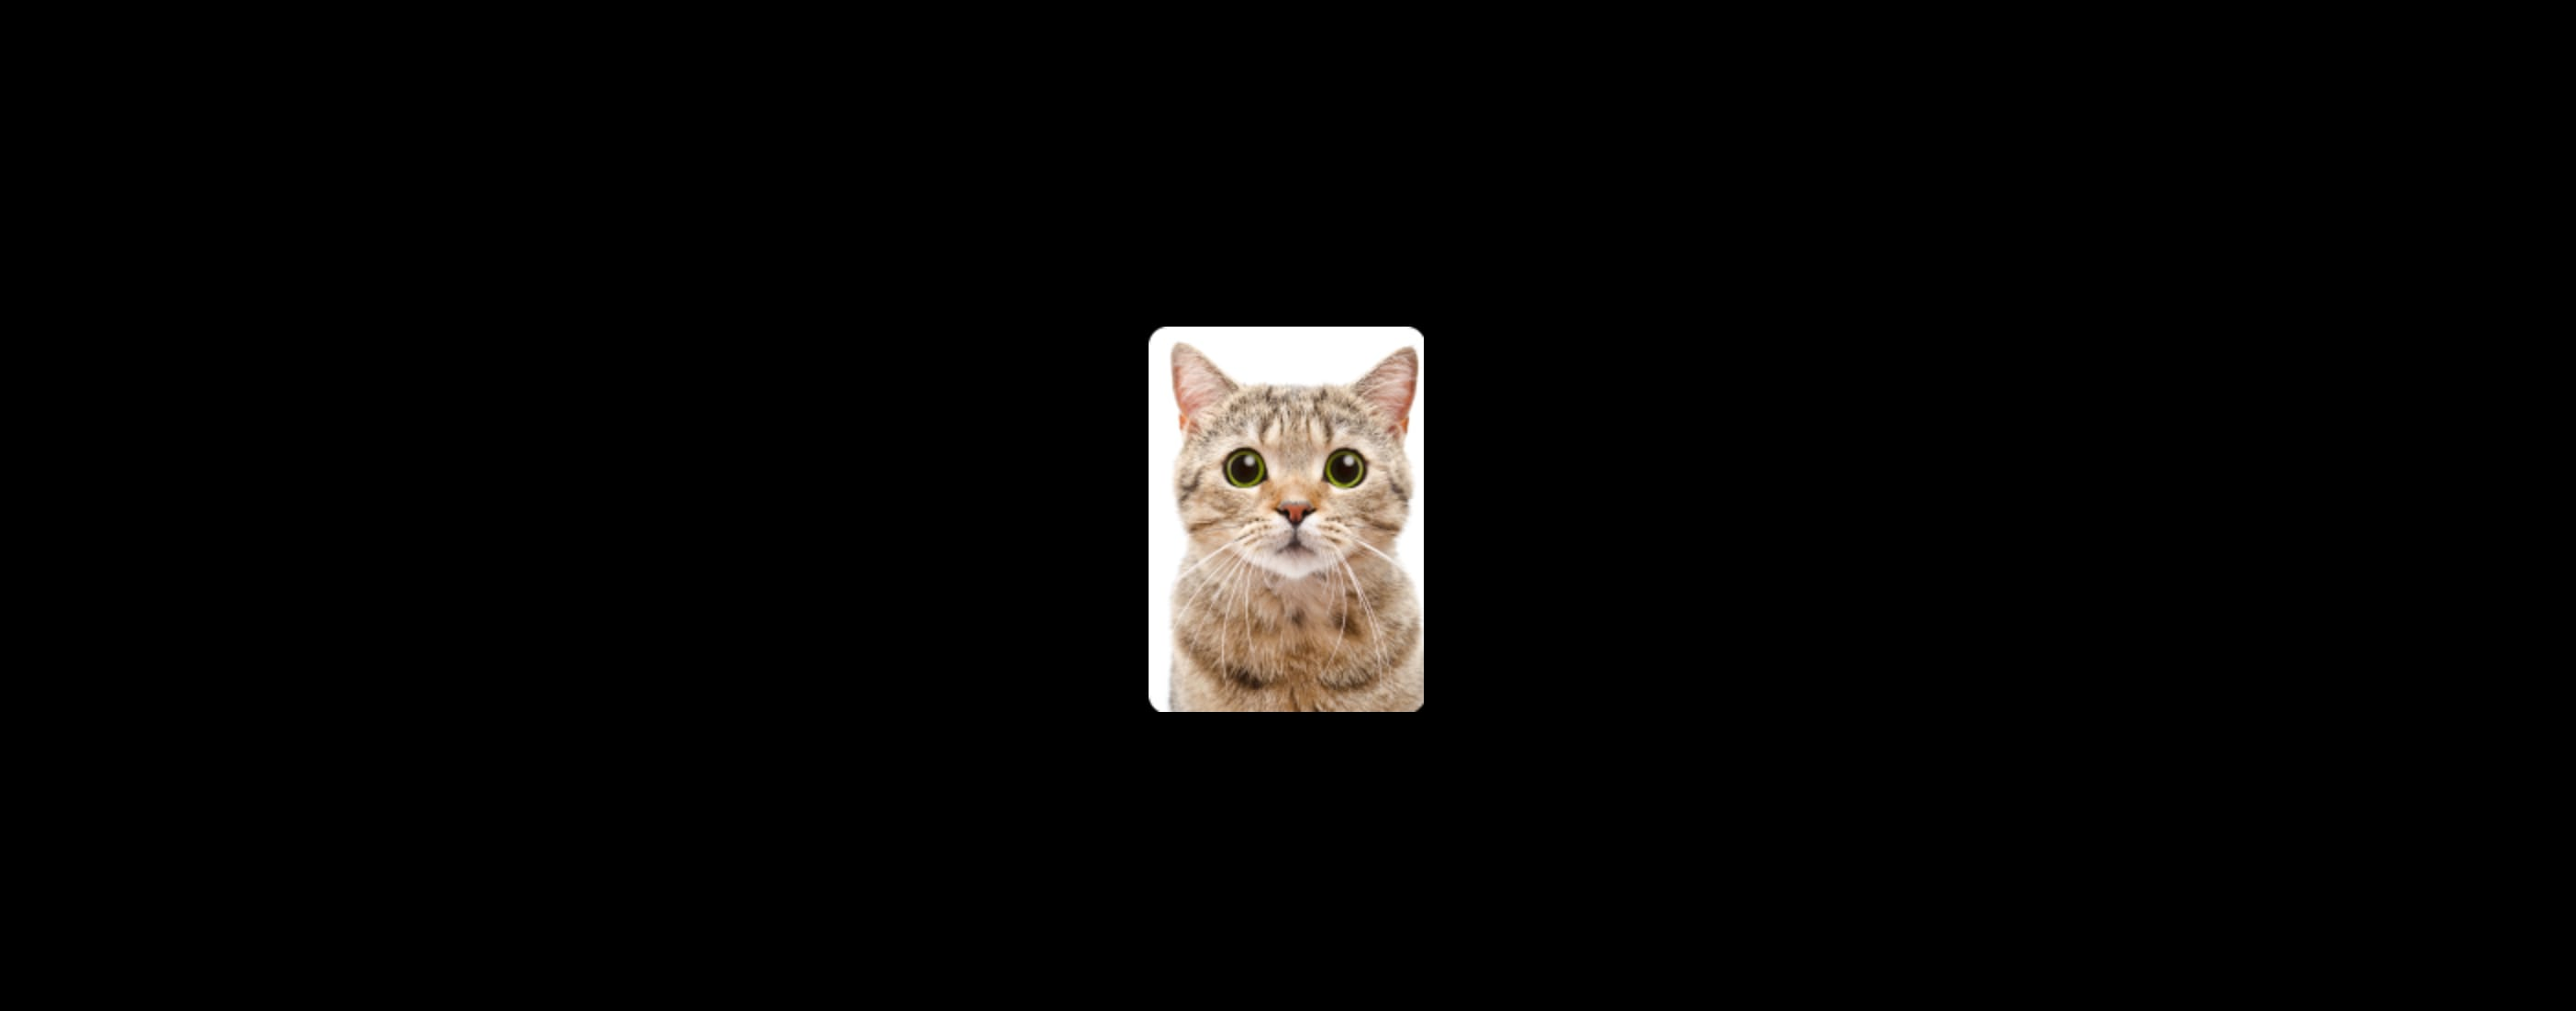 The rectange cat avatar generated by Cloudinary